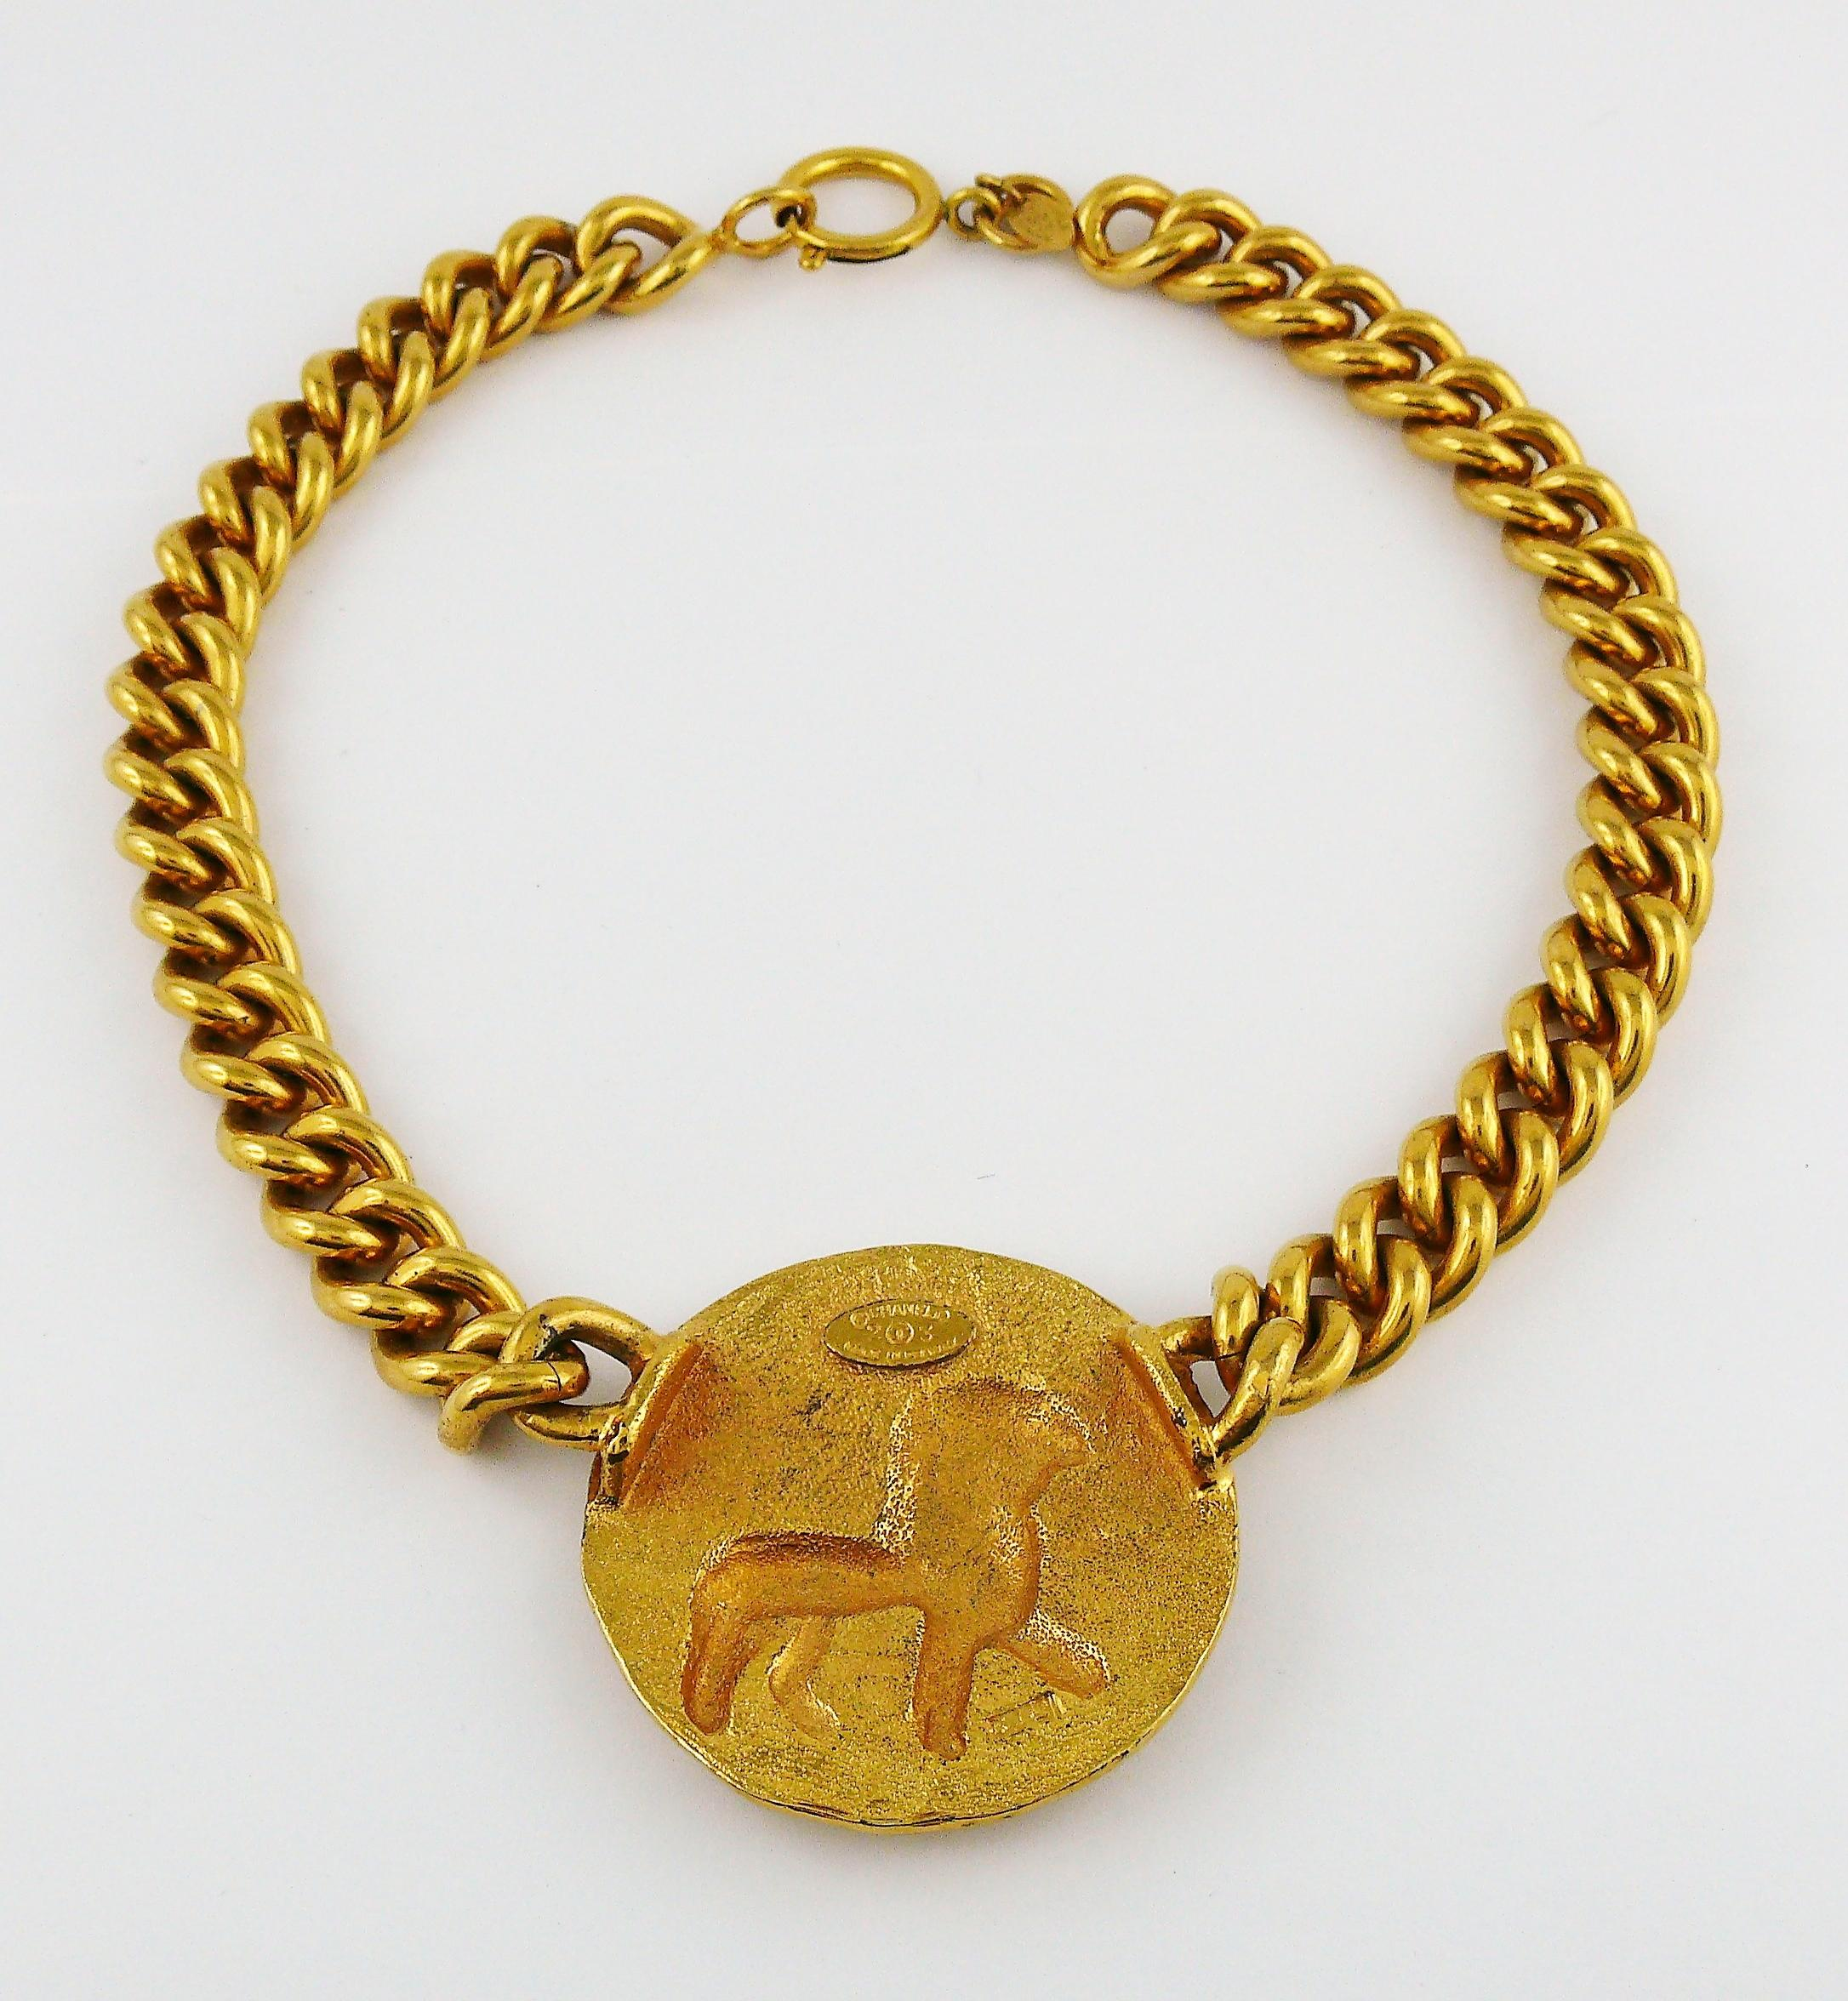 32888ffd85e Chanel by Robert Goossens Vintage Zodiac Lion Medallion Choker Necklace For  Sale at 1stdibs